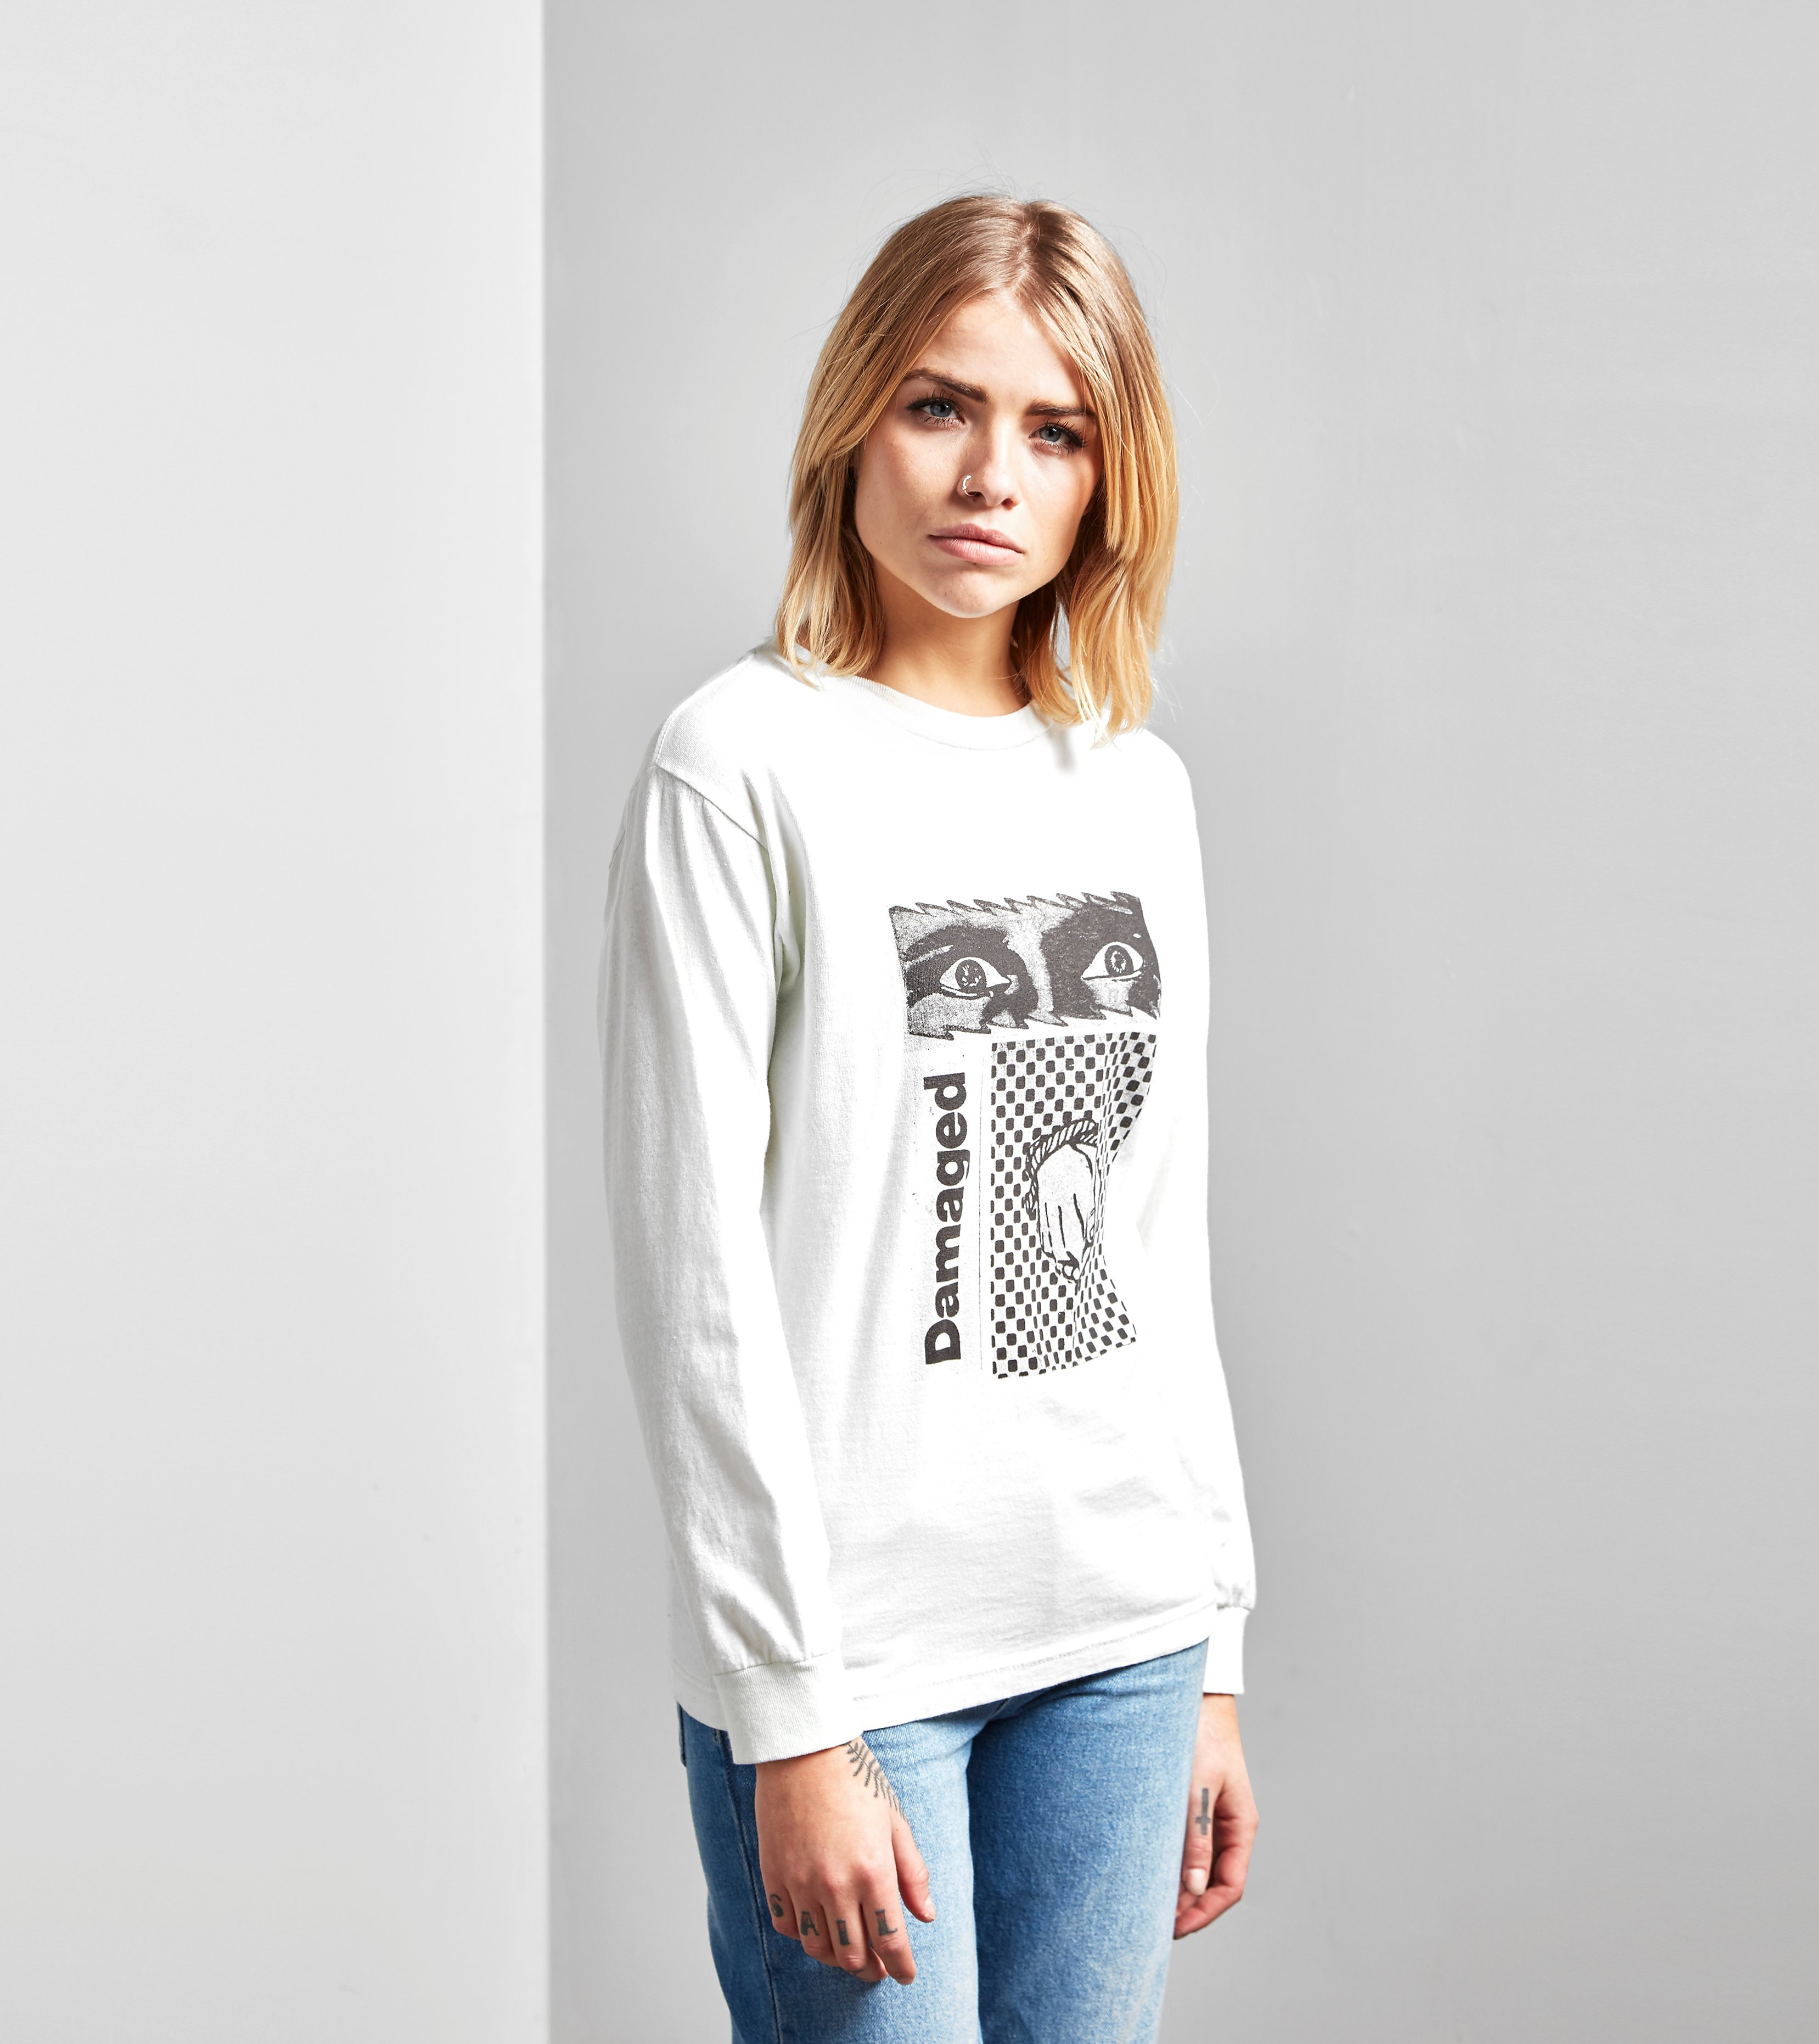 Obey Long-Sleeved Damaged T-Shirt